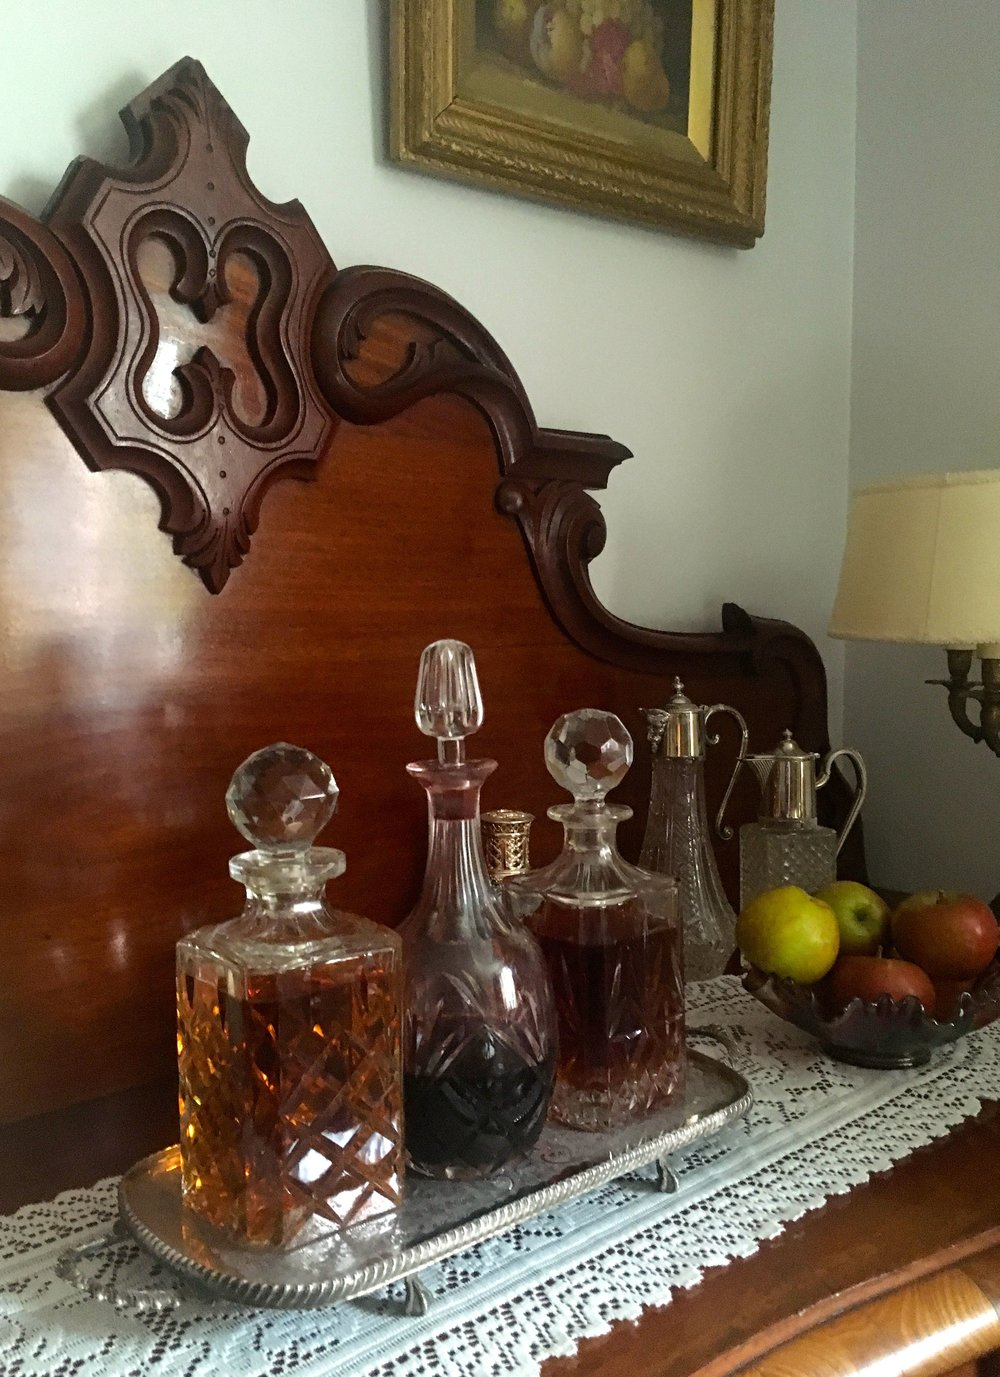 sherry on the sideboard